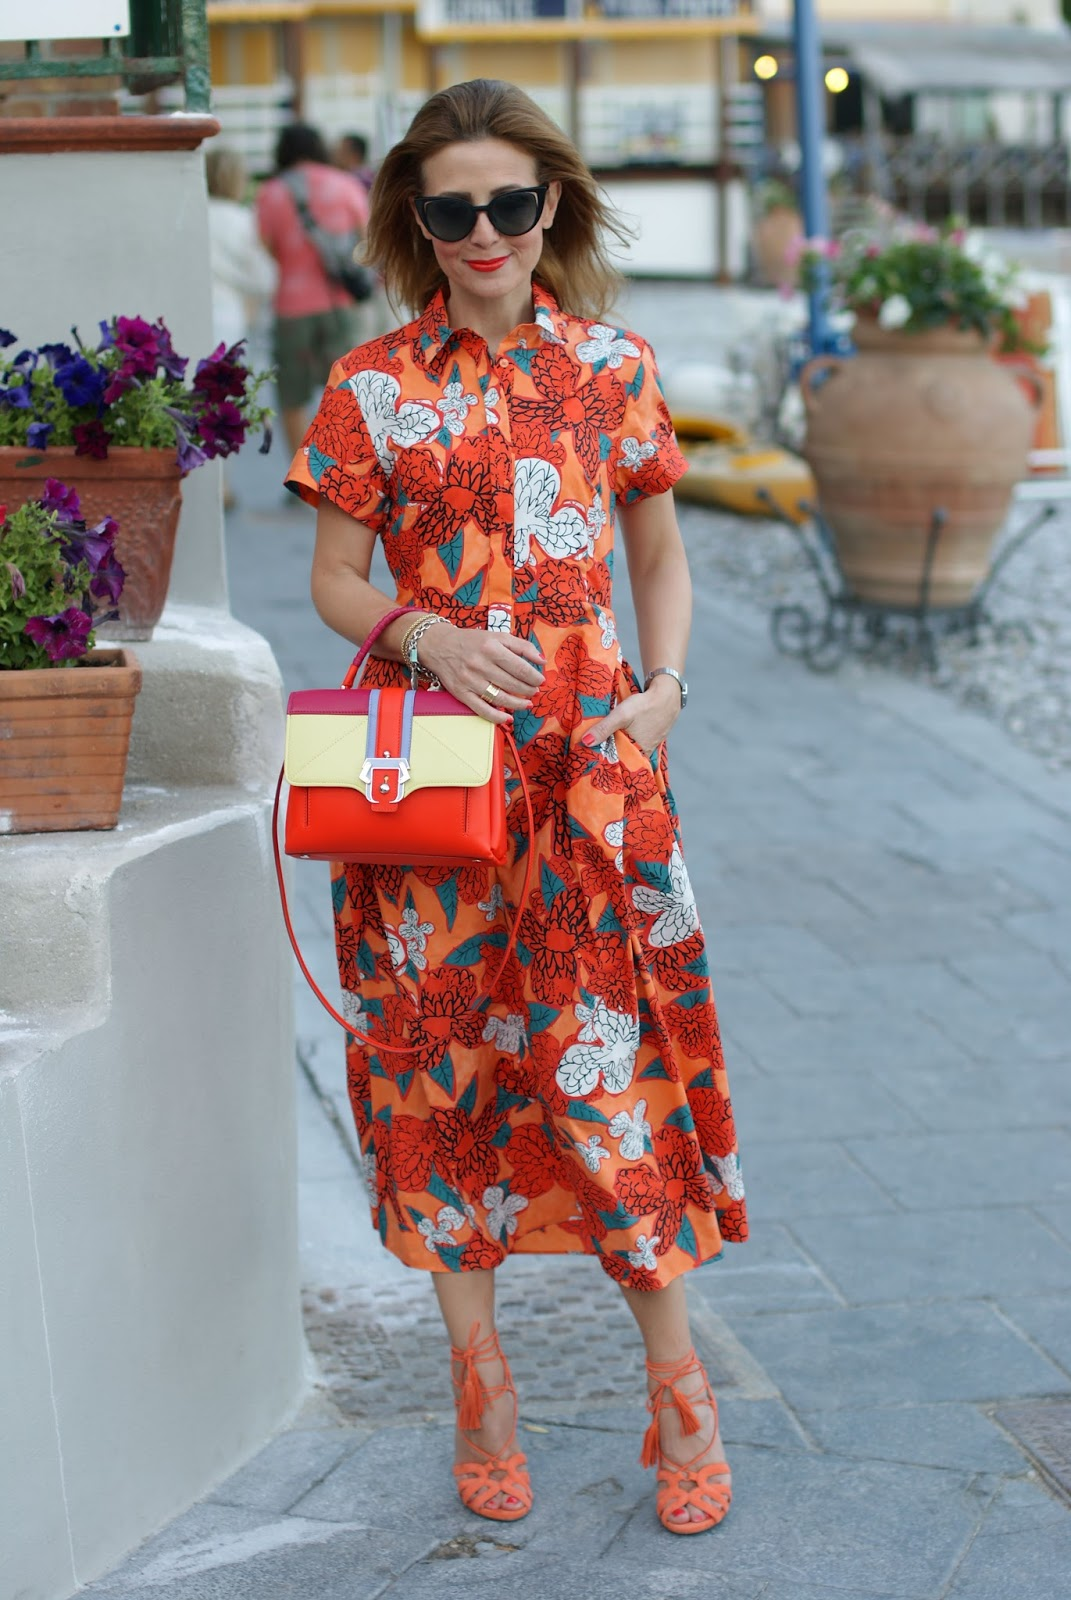 Ferragosto last minute with orange Max & Co floral maxi dress and Paula Cademartori bag on Fashion and Cookies fashion blog, fashion blogger style